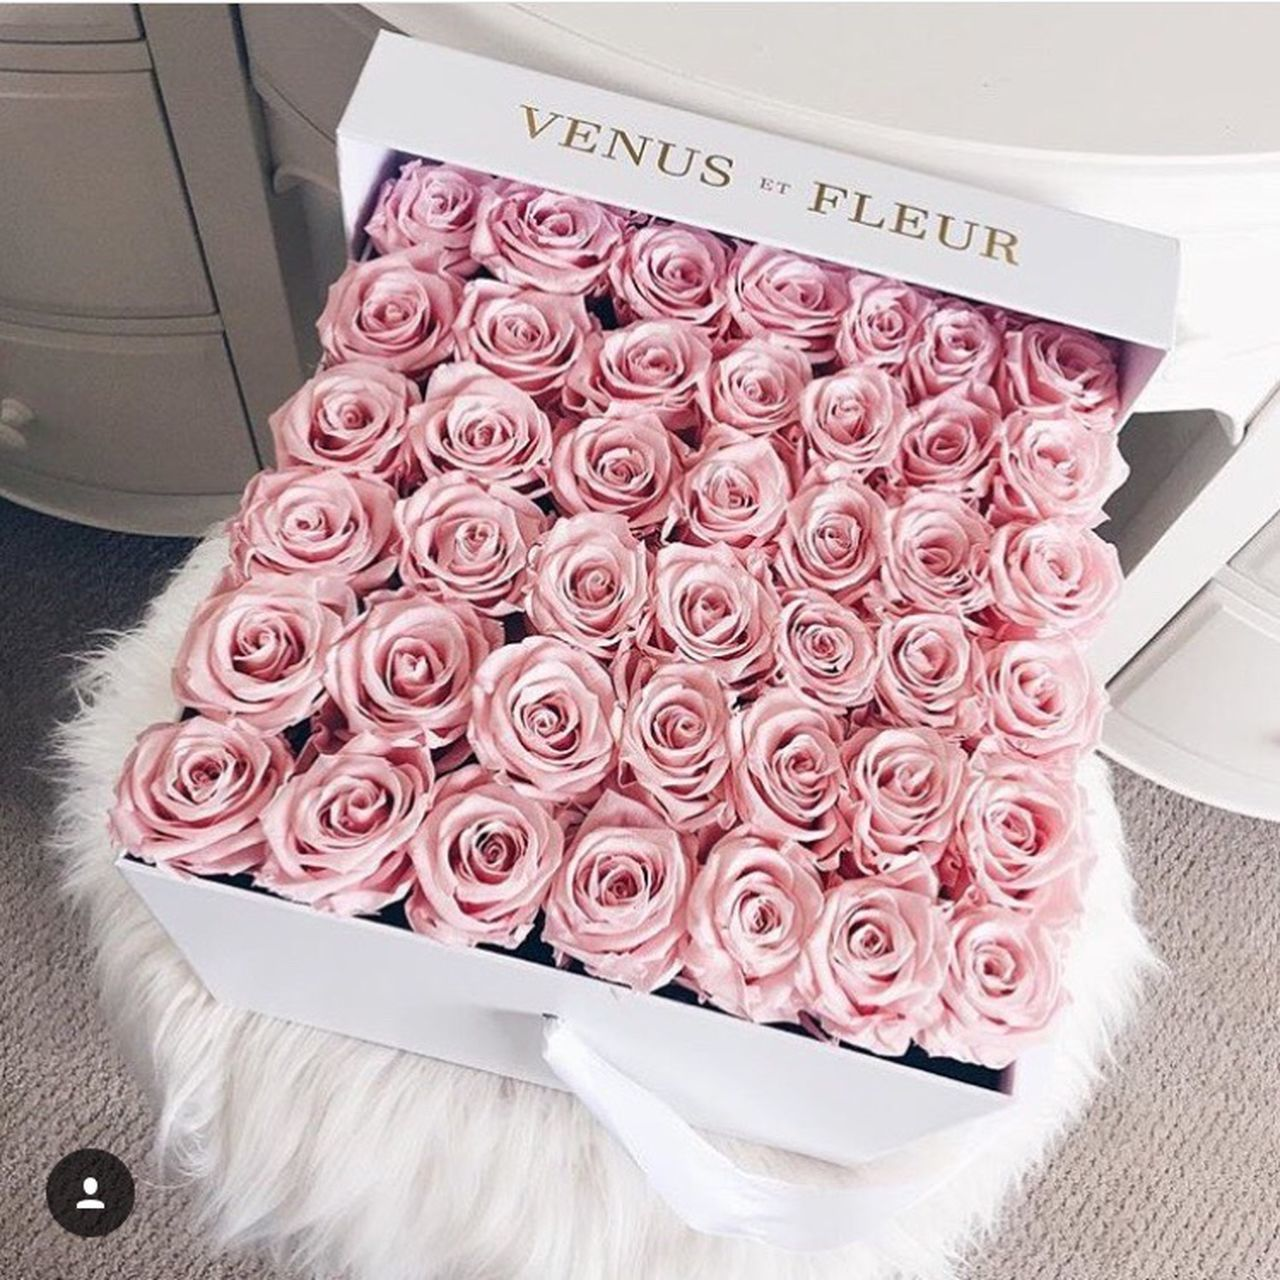 Roses needed for princesses 🌷🌷| 📍join us on instagram @billionairelabel Billionaire  Billionairelabel Luxury Pink Flowers Roses Girl Princess